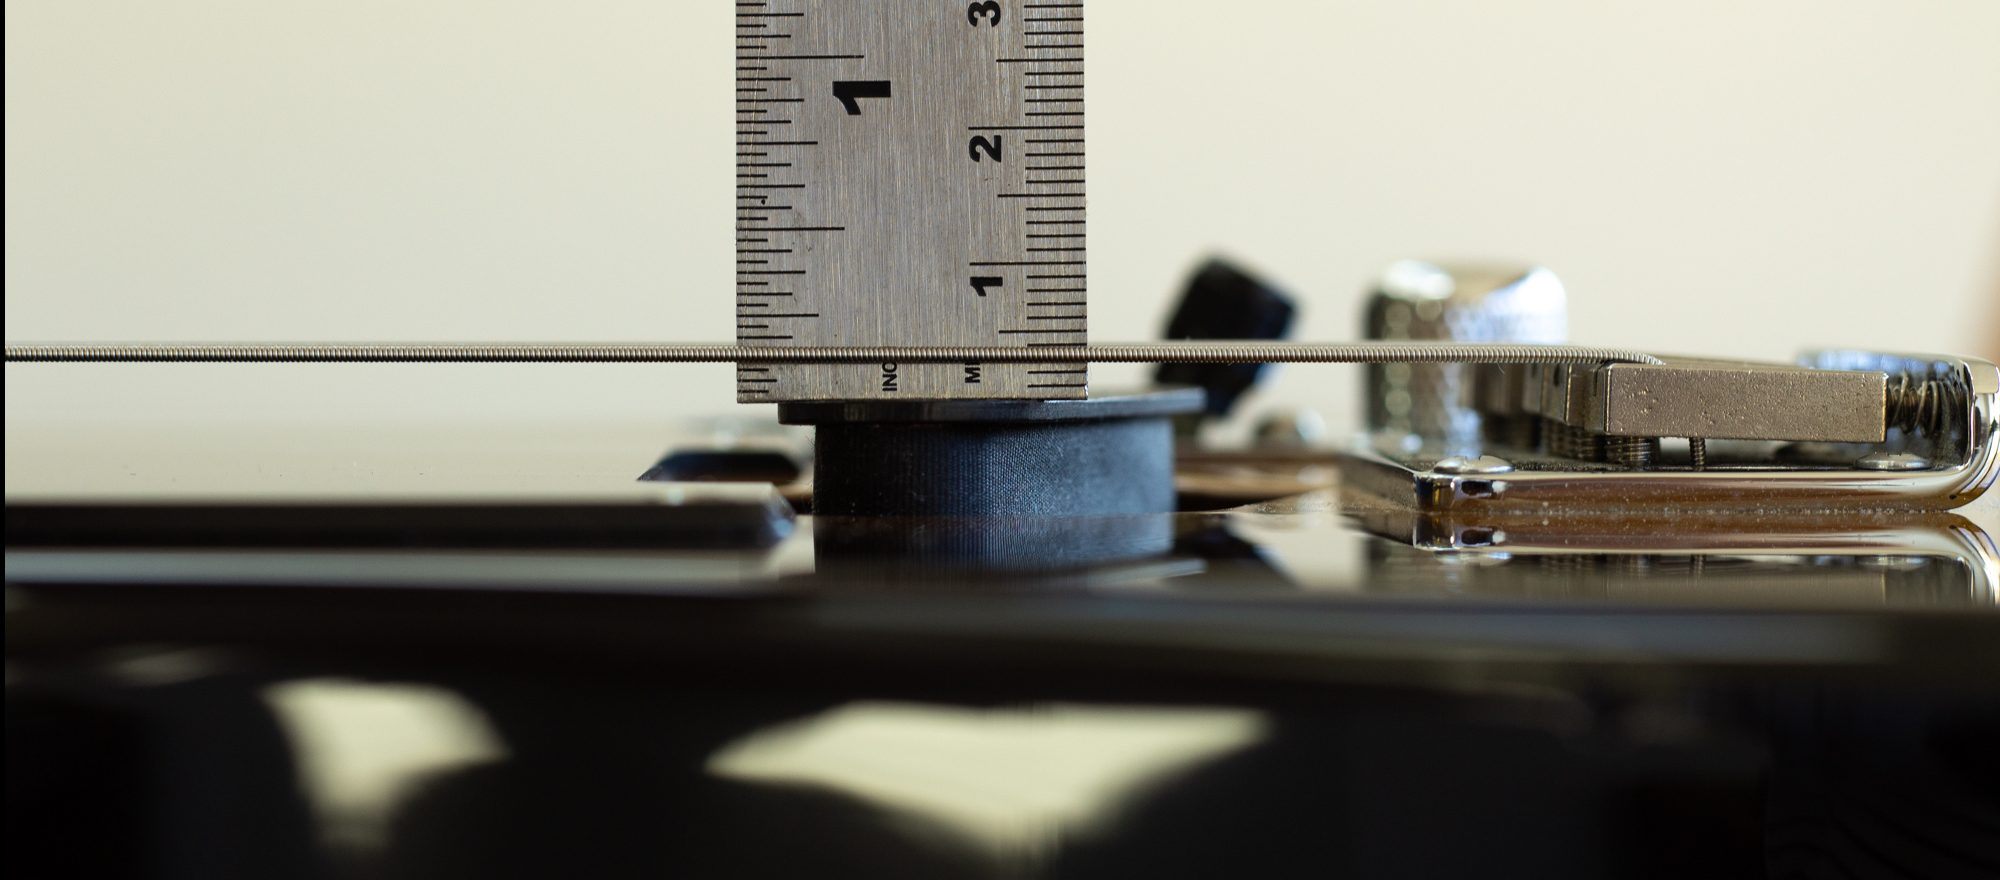 Pickup height measured with a steel ruler